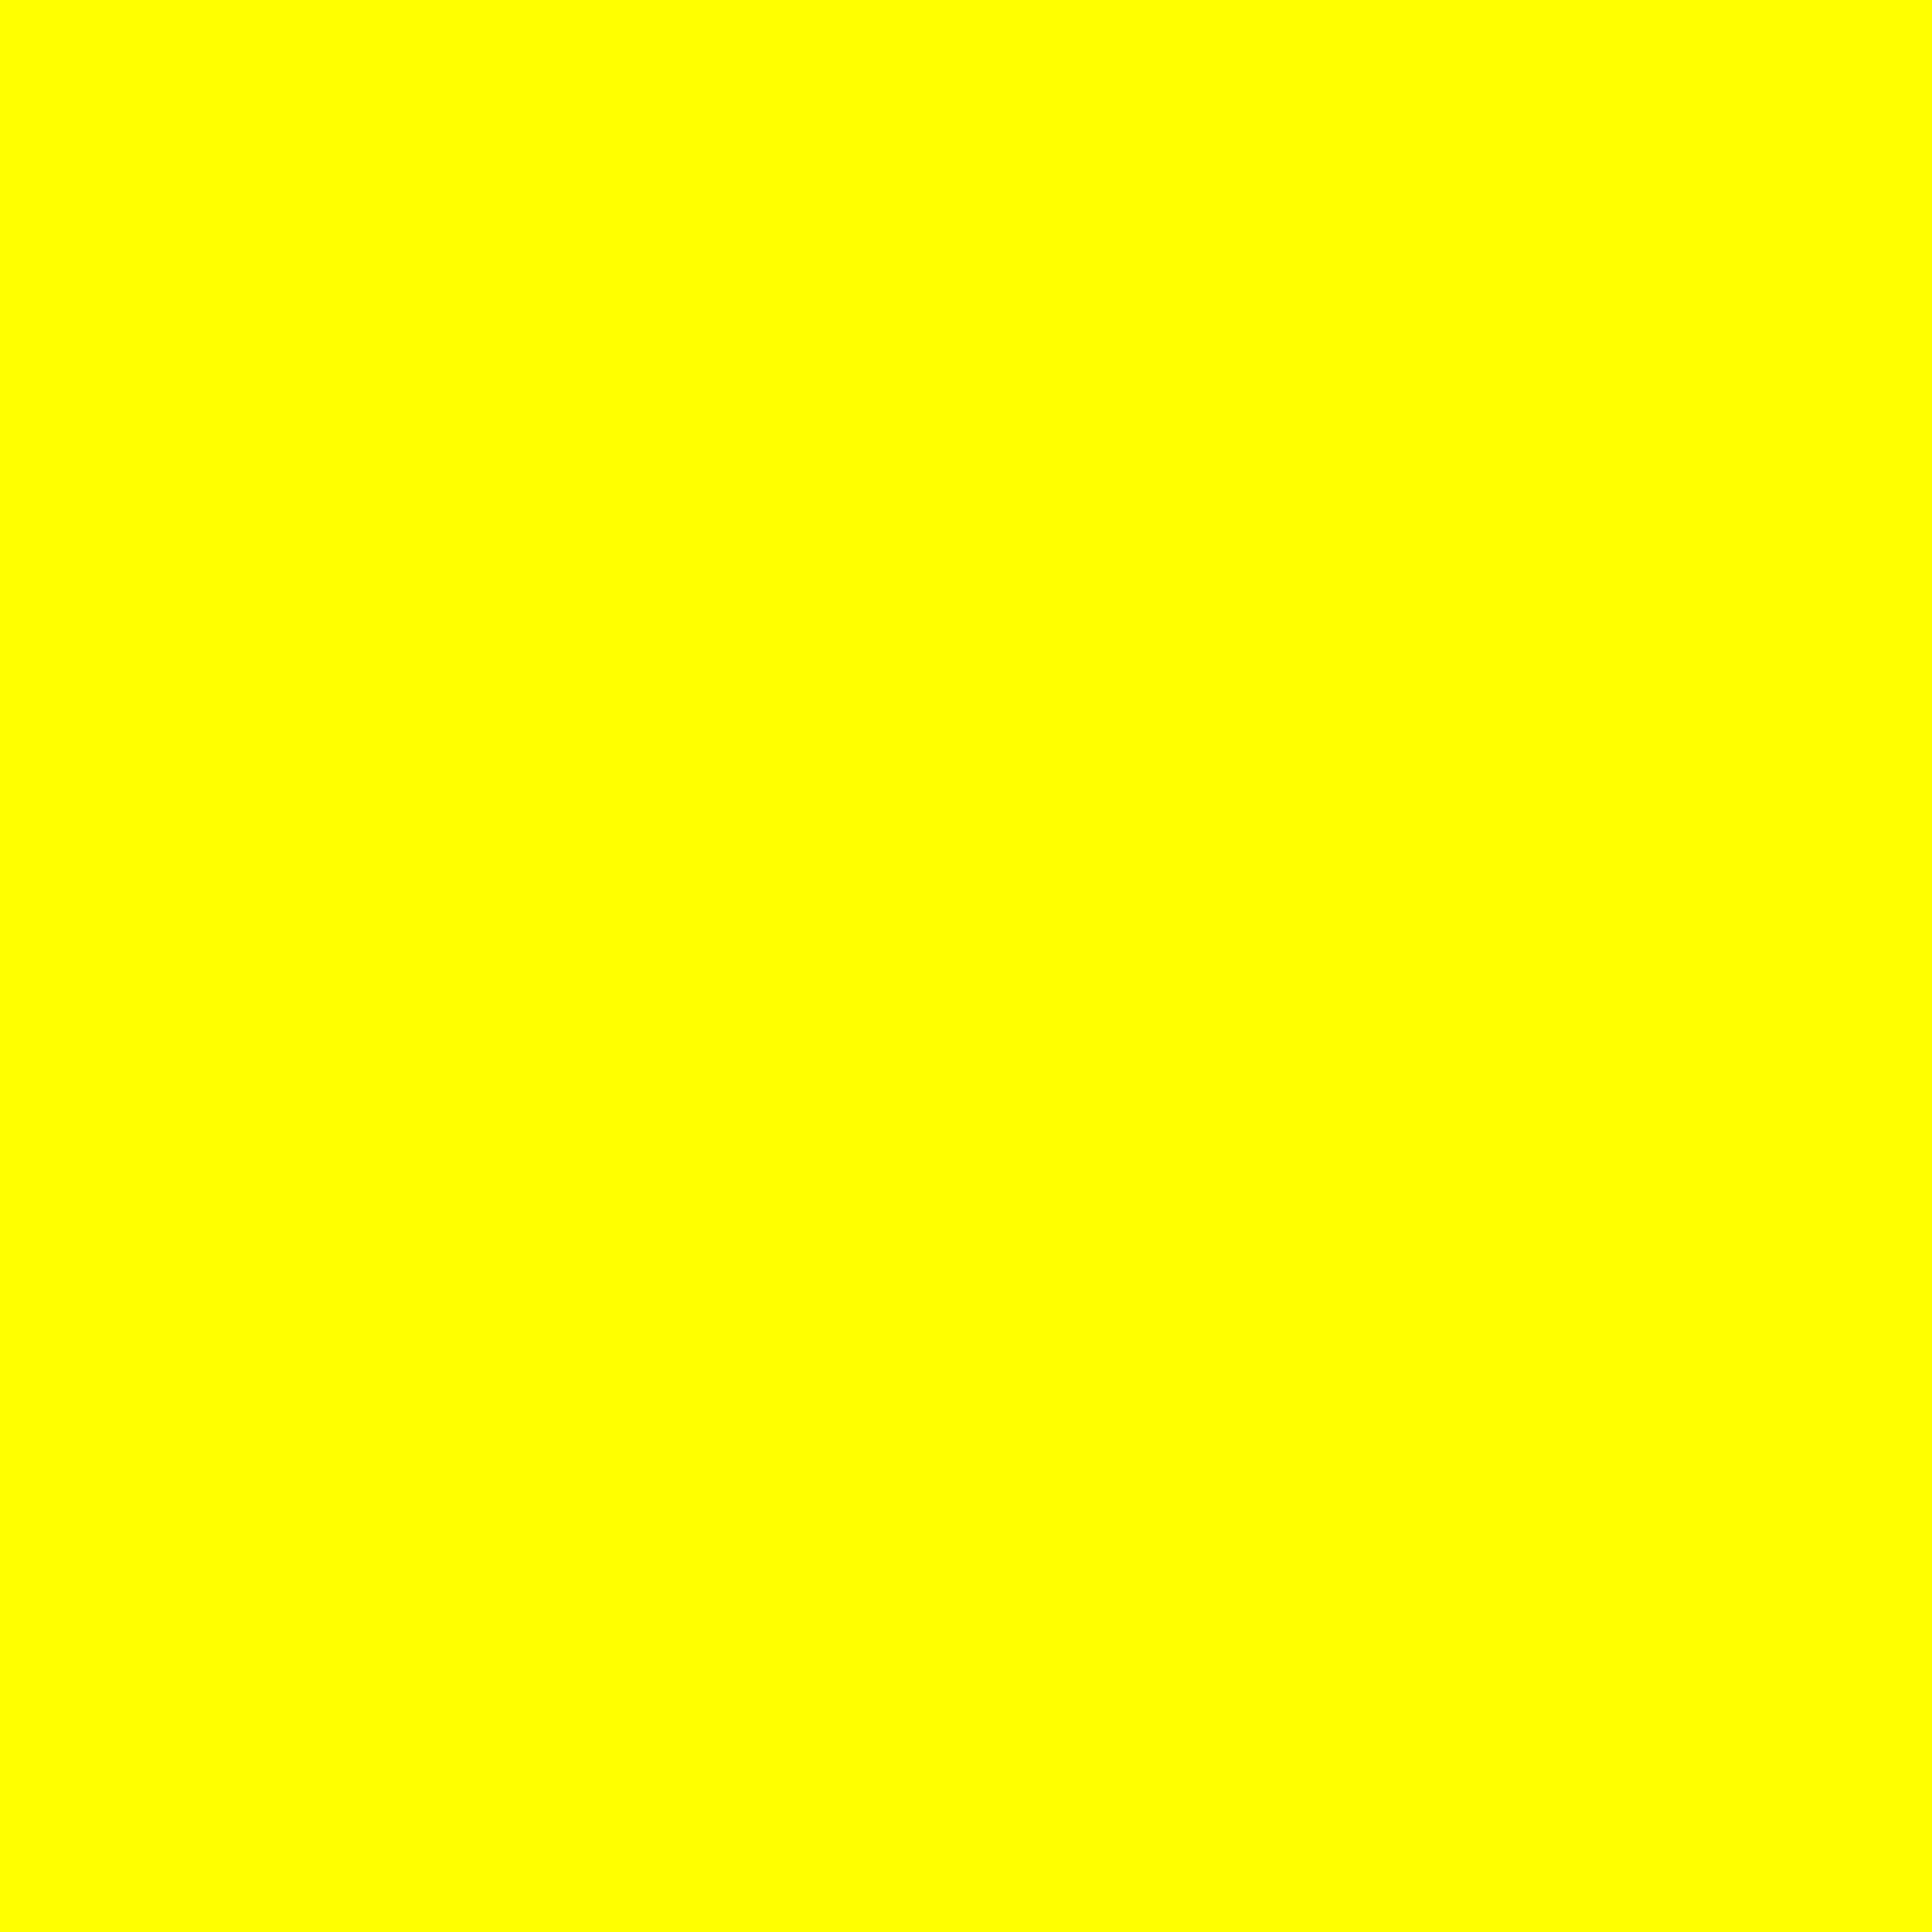 2048x2048 Yellow Solid Color Background